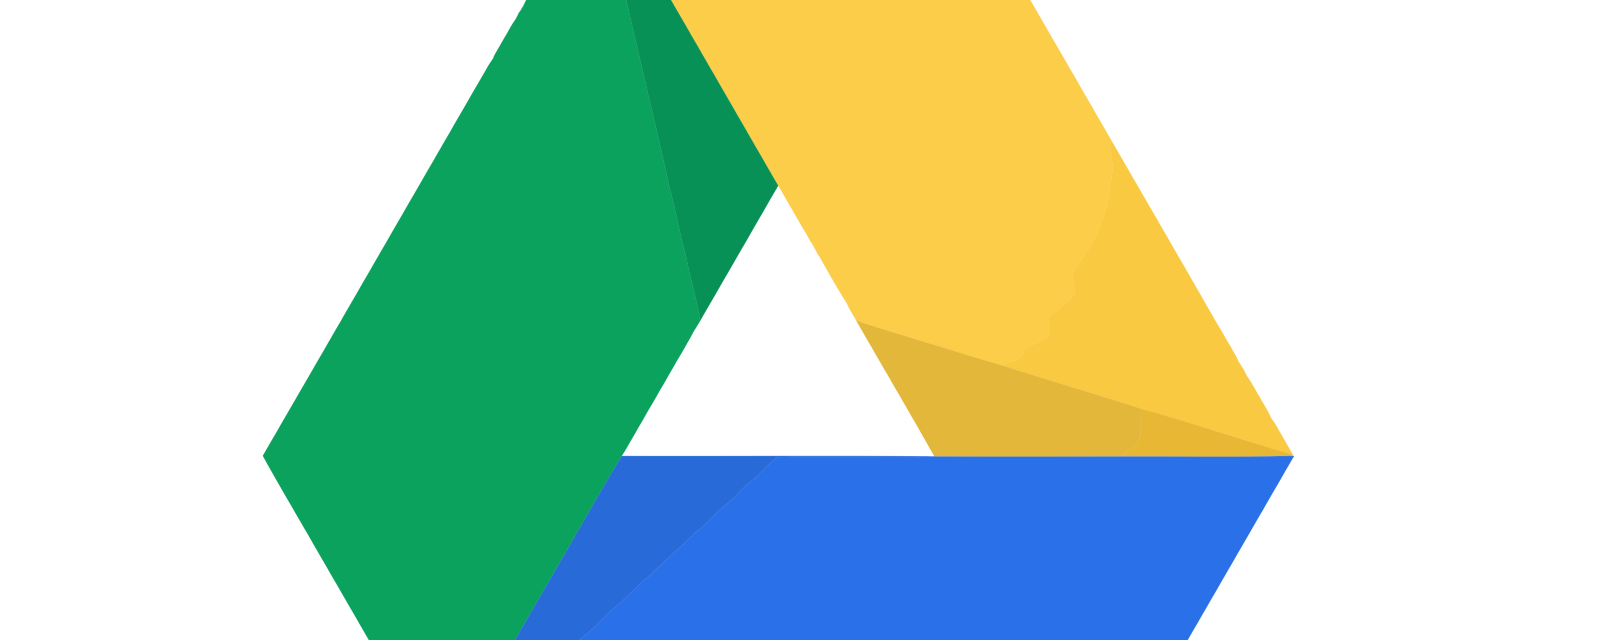 Backup And Sync: Google Drive's Desktop Client To Backup Your Computer Files